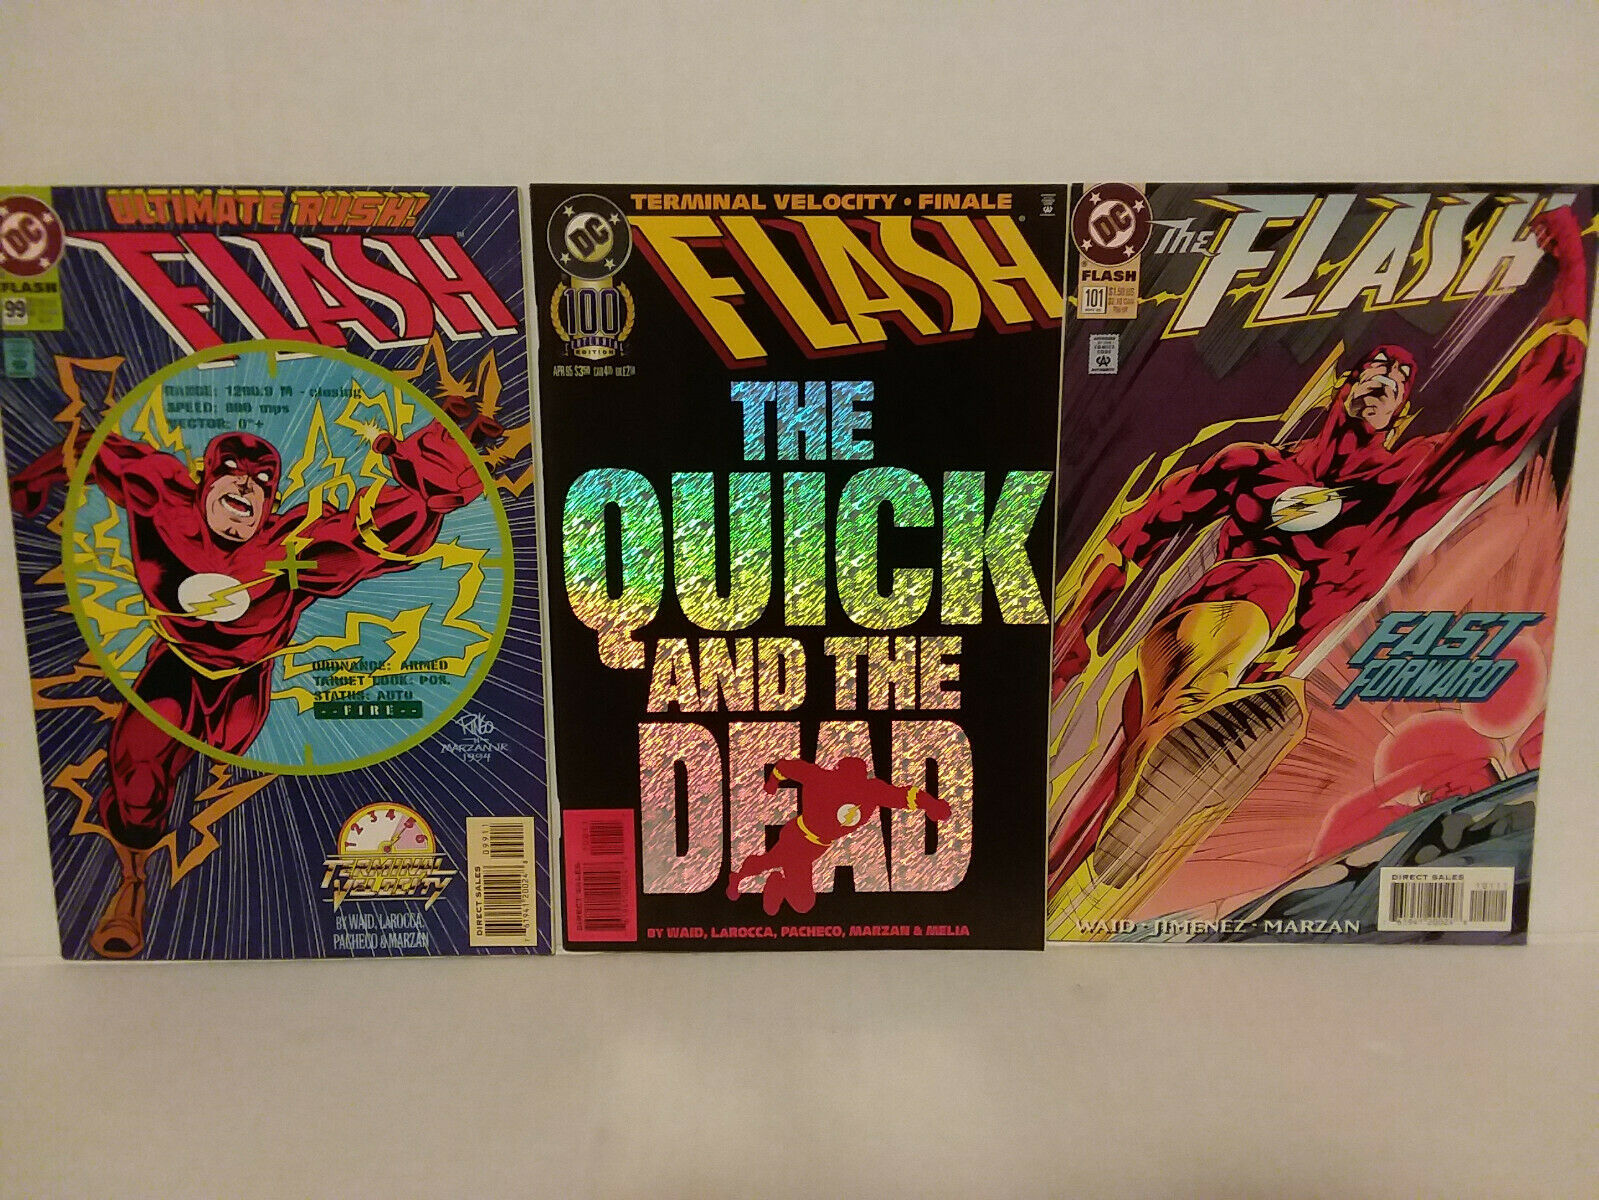 THE FLASH - THREE ISSUES - #99, #100 AND #101 - FREE SHIPPING